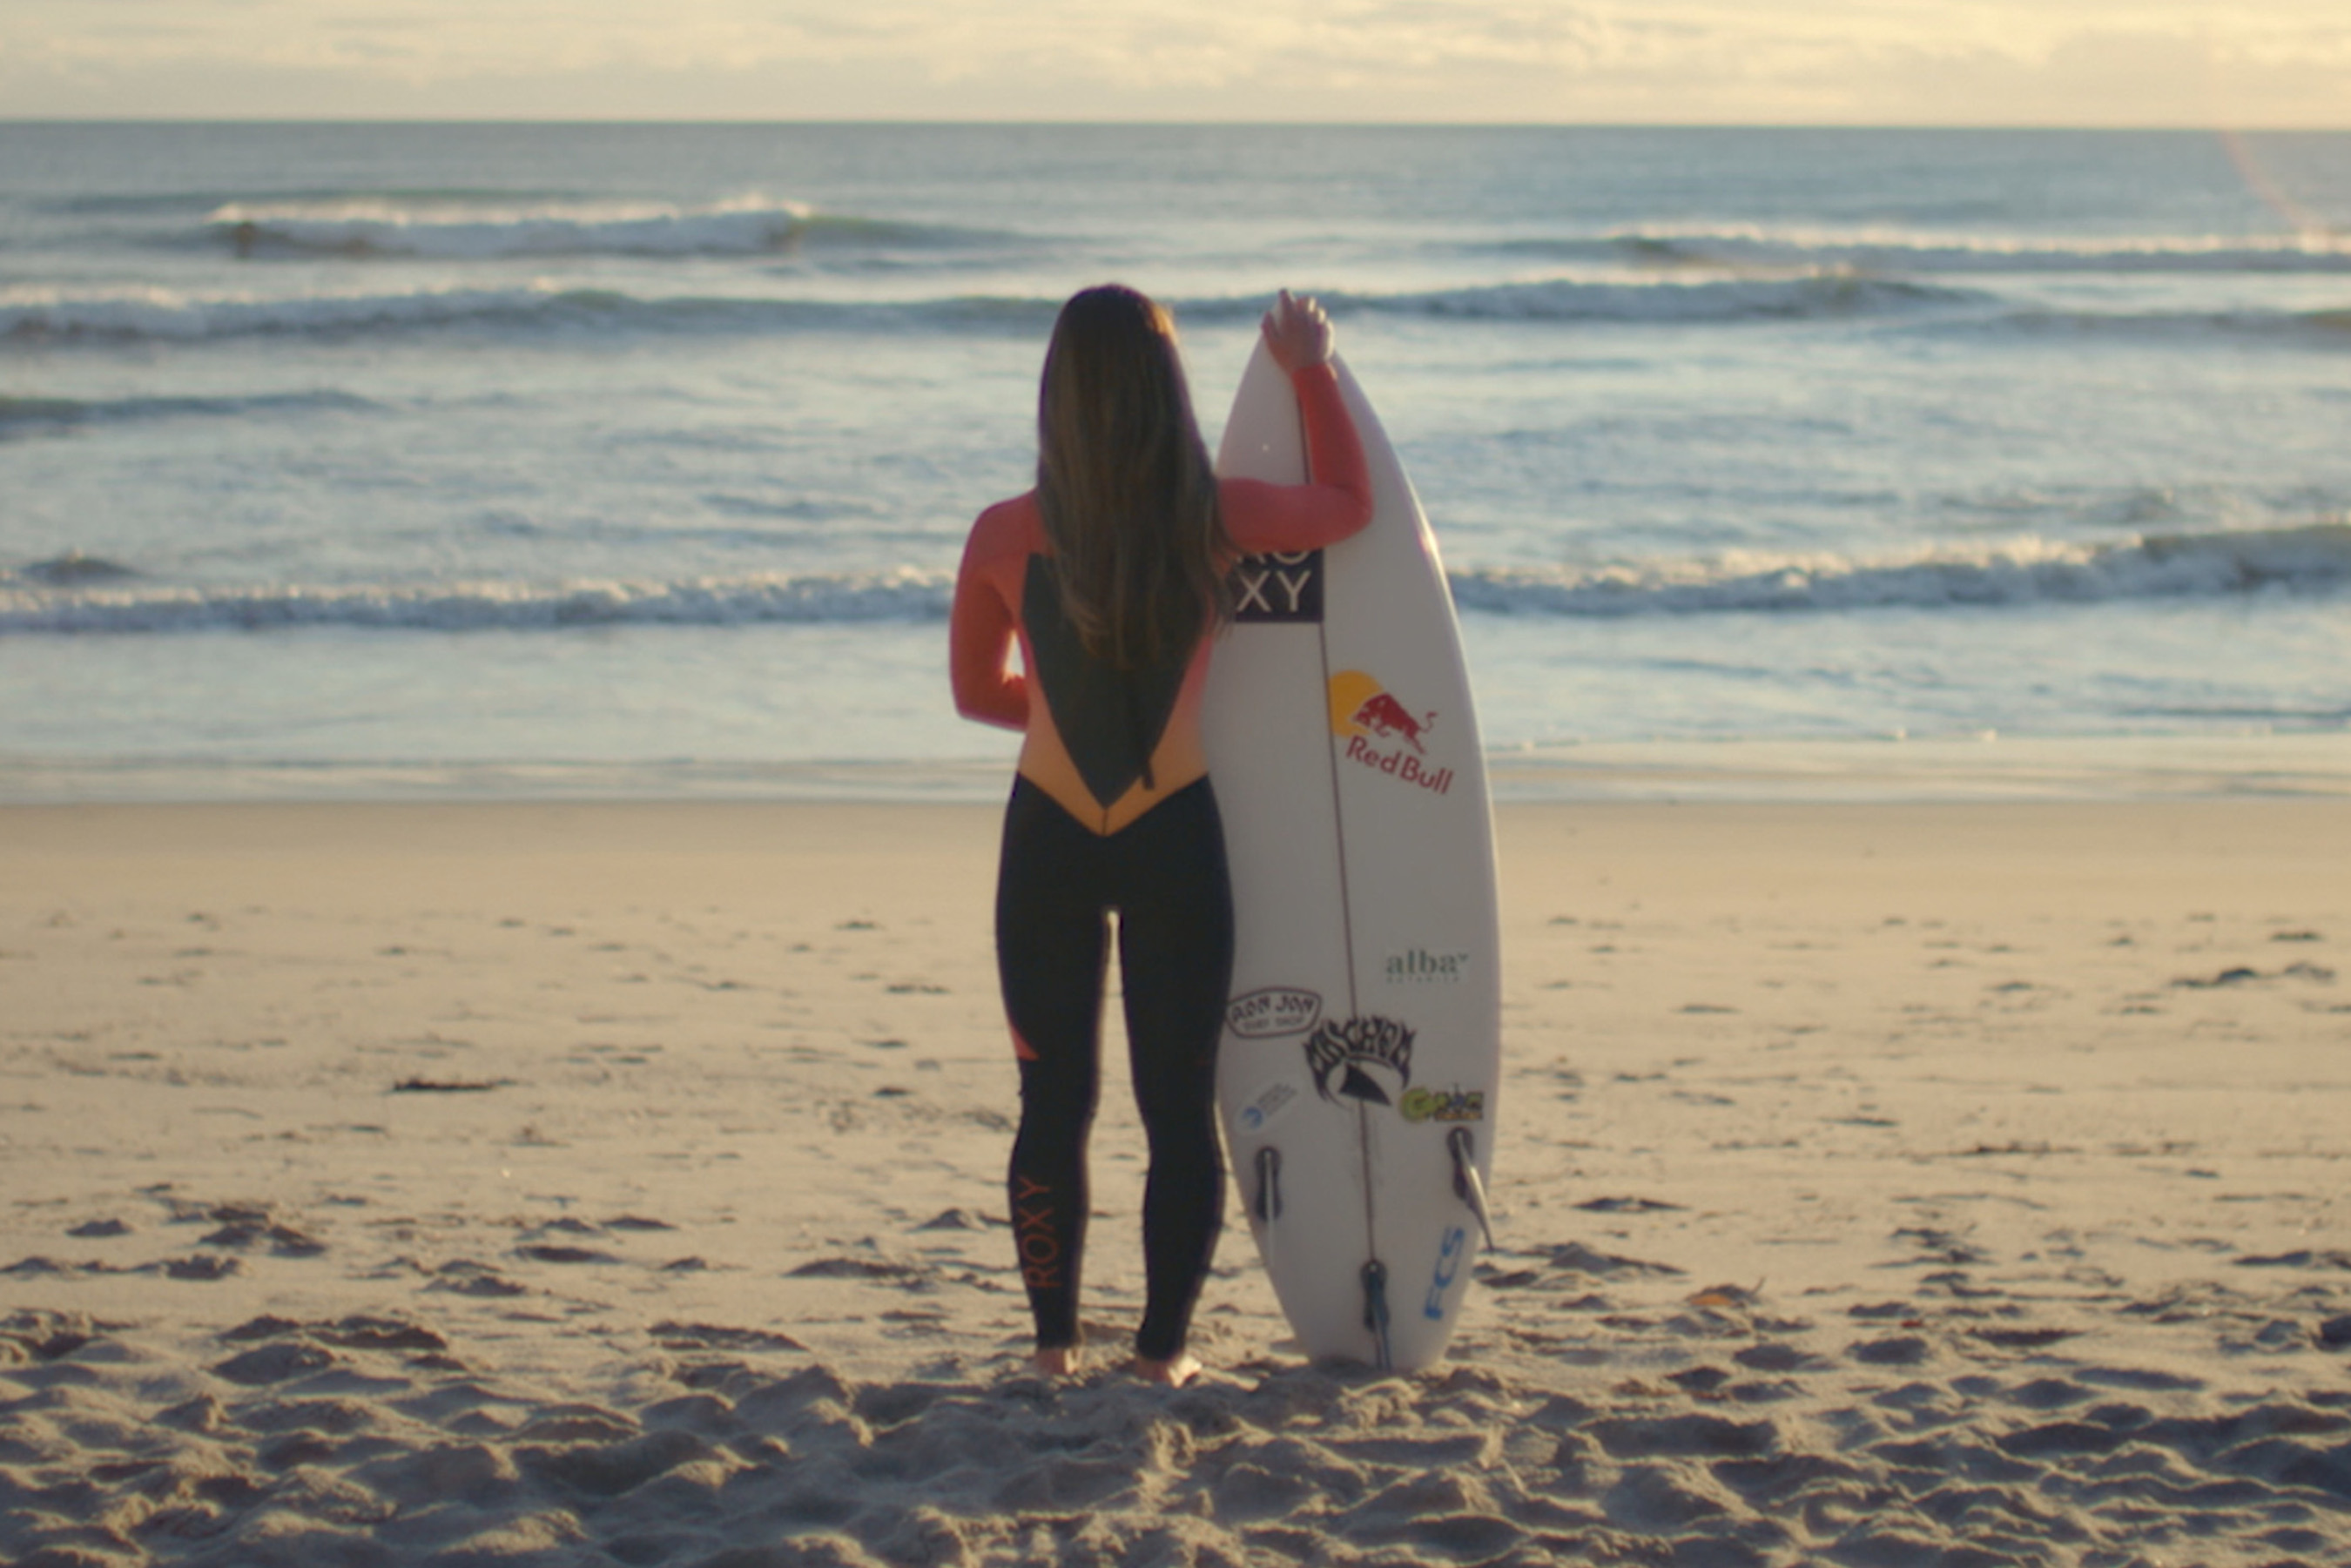 Eye Deserve More: The essential role in-person eye care from an AOA optometrist plays in pro surfer Caroline Marks' lead-up to Tokyo